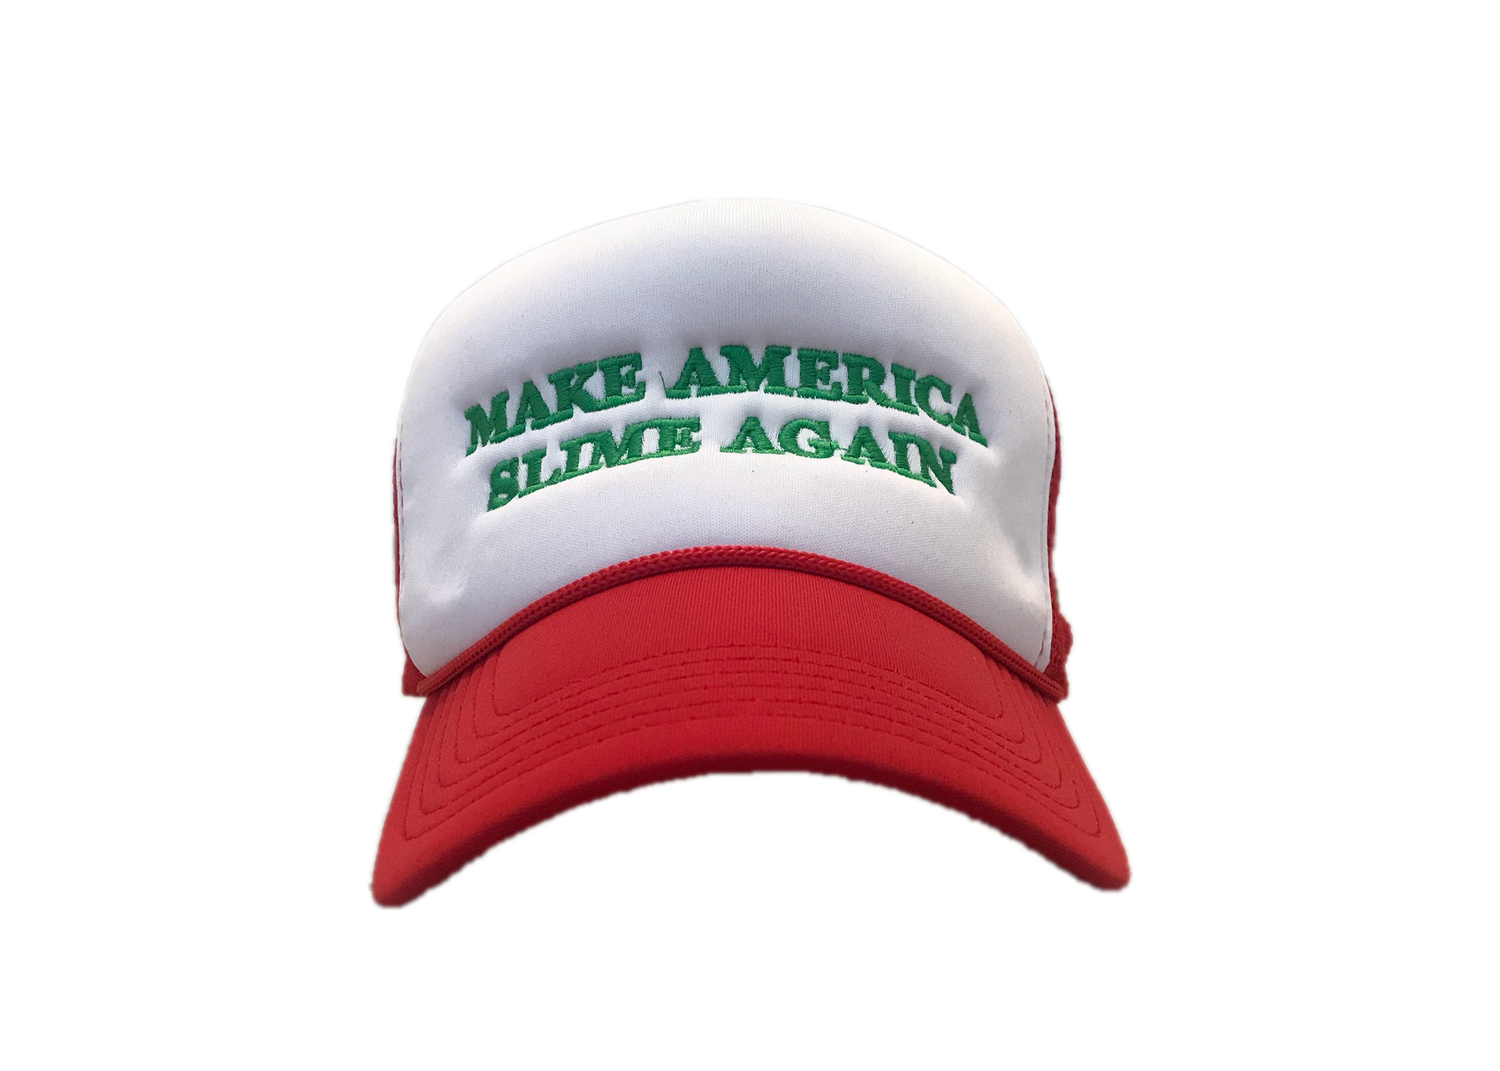 Image of Make America Slime Again Embroidery Hat (WX95 Studios Collab)